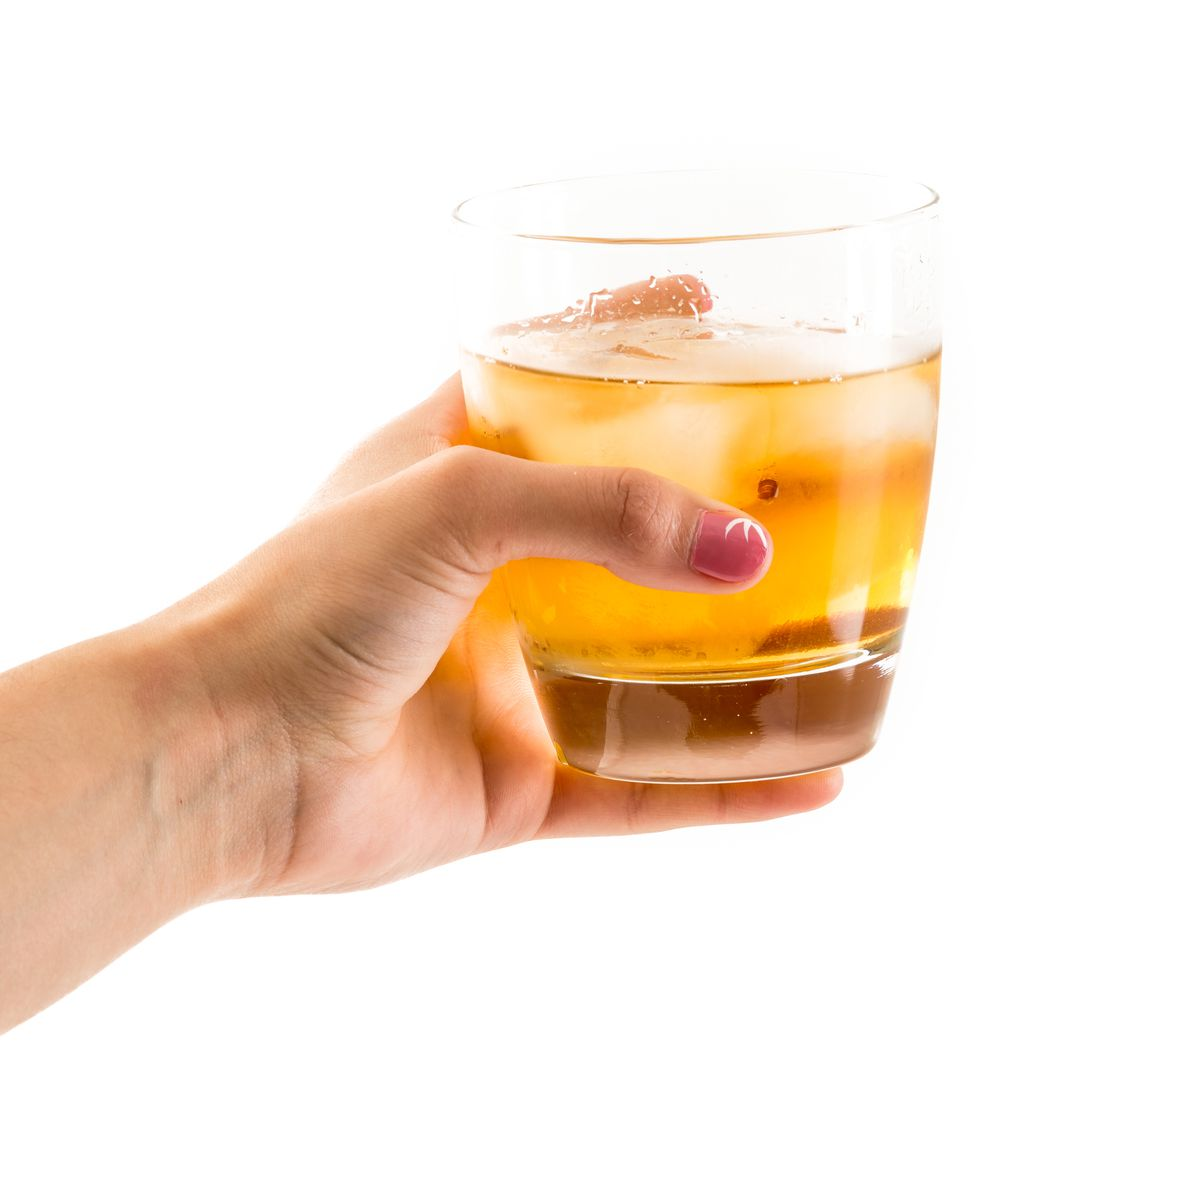 Hand holding an old fashioned glass with whisky on the rocks...